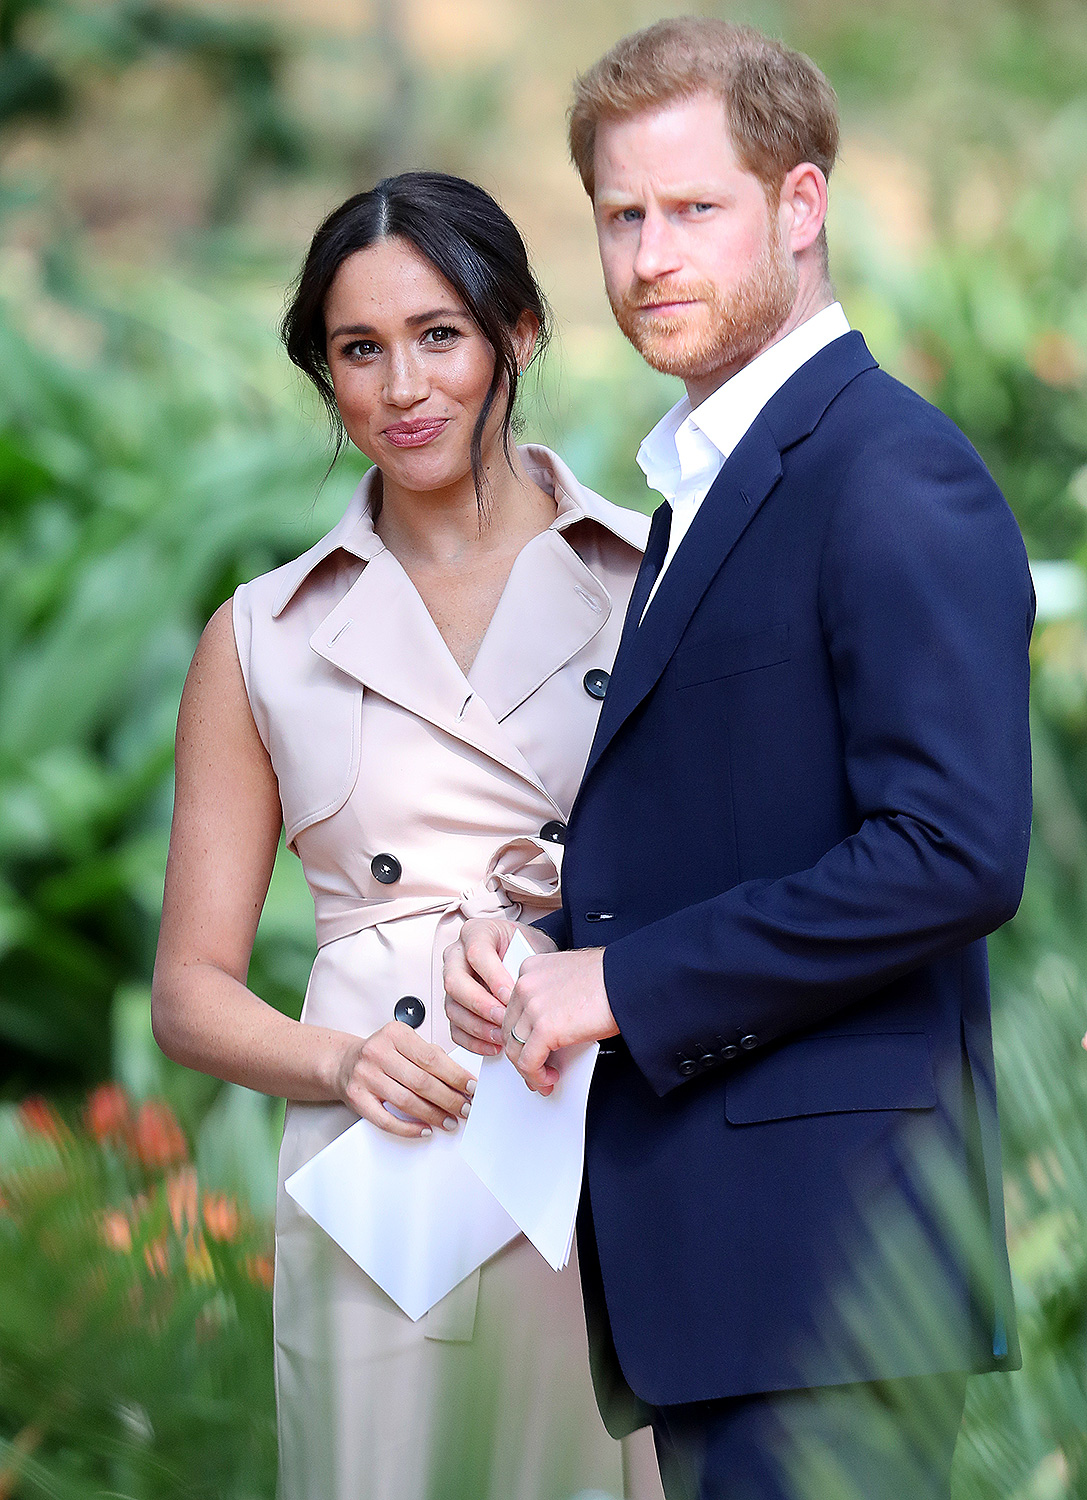 Escape from Palace: Prince Harry and Meghan Markle Royal Exit To Be Turned Into Movie